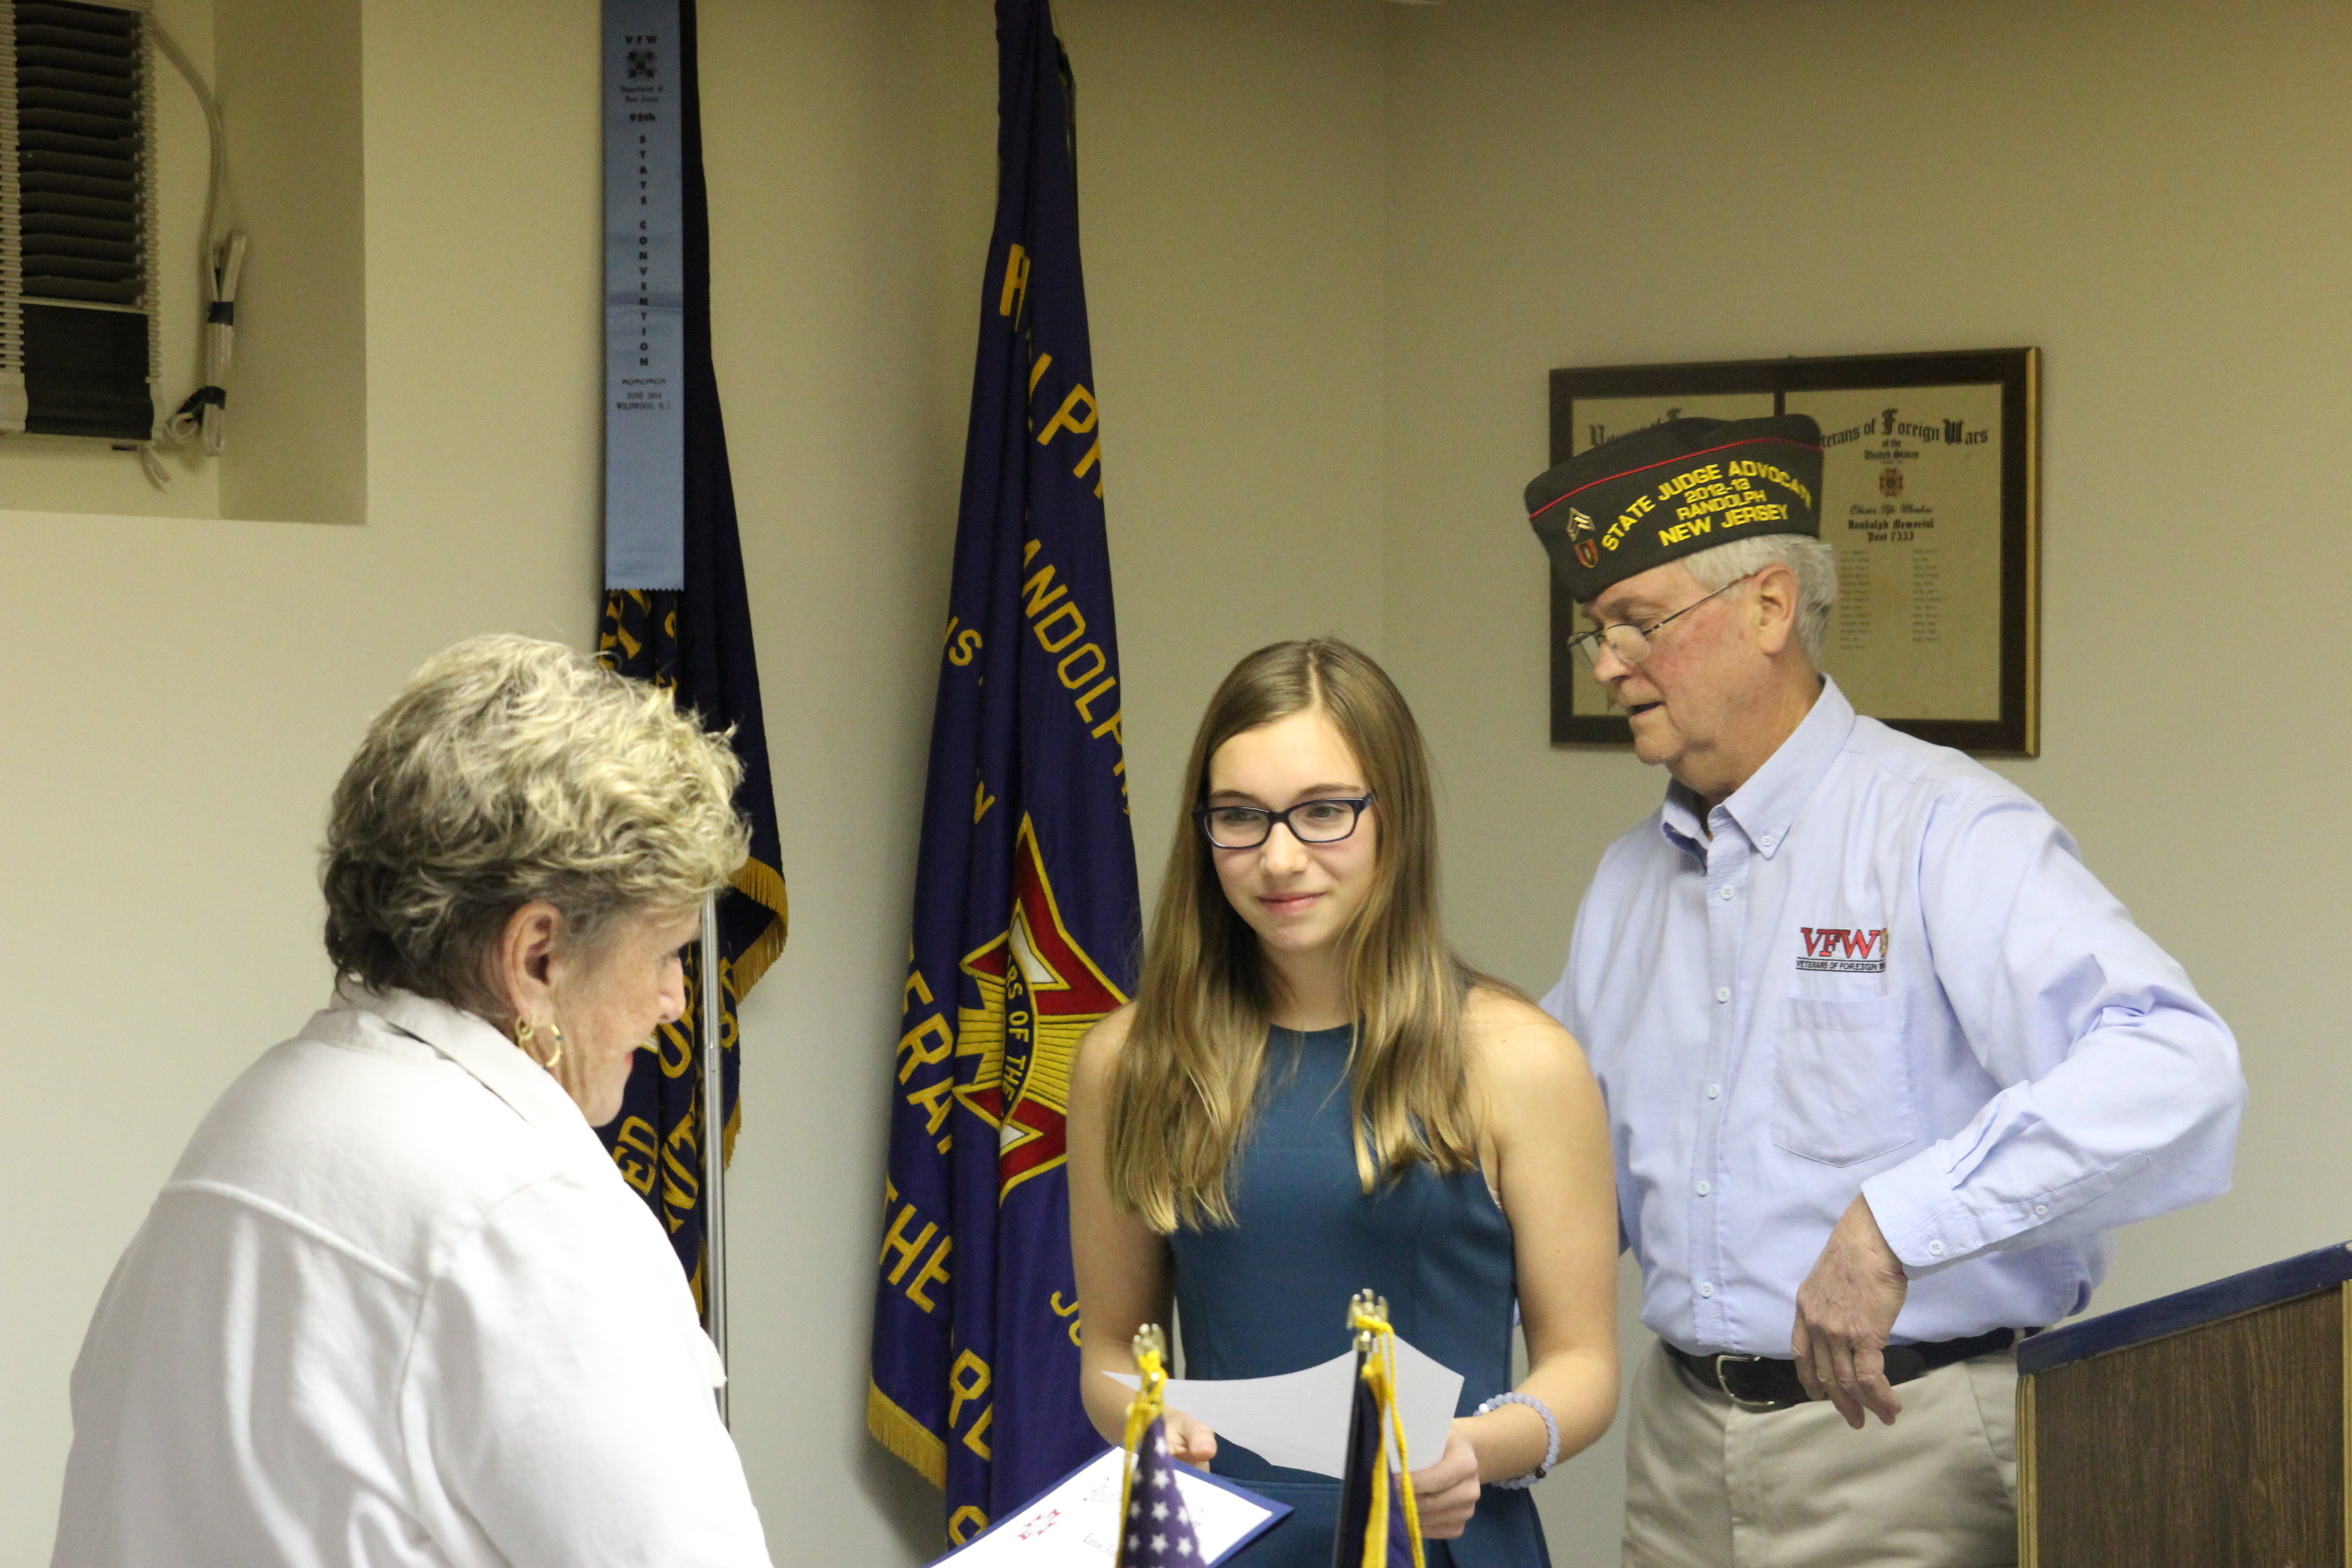 patriotic essay scholarships There are many college financial aid and scholarship opportunities available to  jmg  at cksf there are no essays, no applications, and no gpa requirements   vfw auxiliary's young american patriotic art contest - each year, more than.